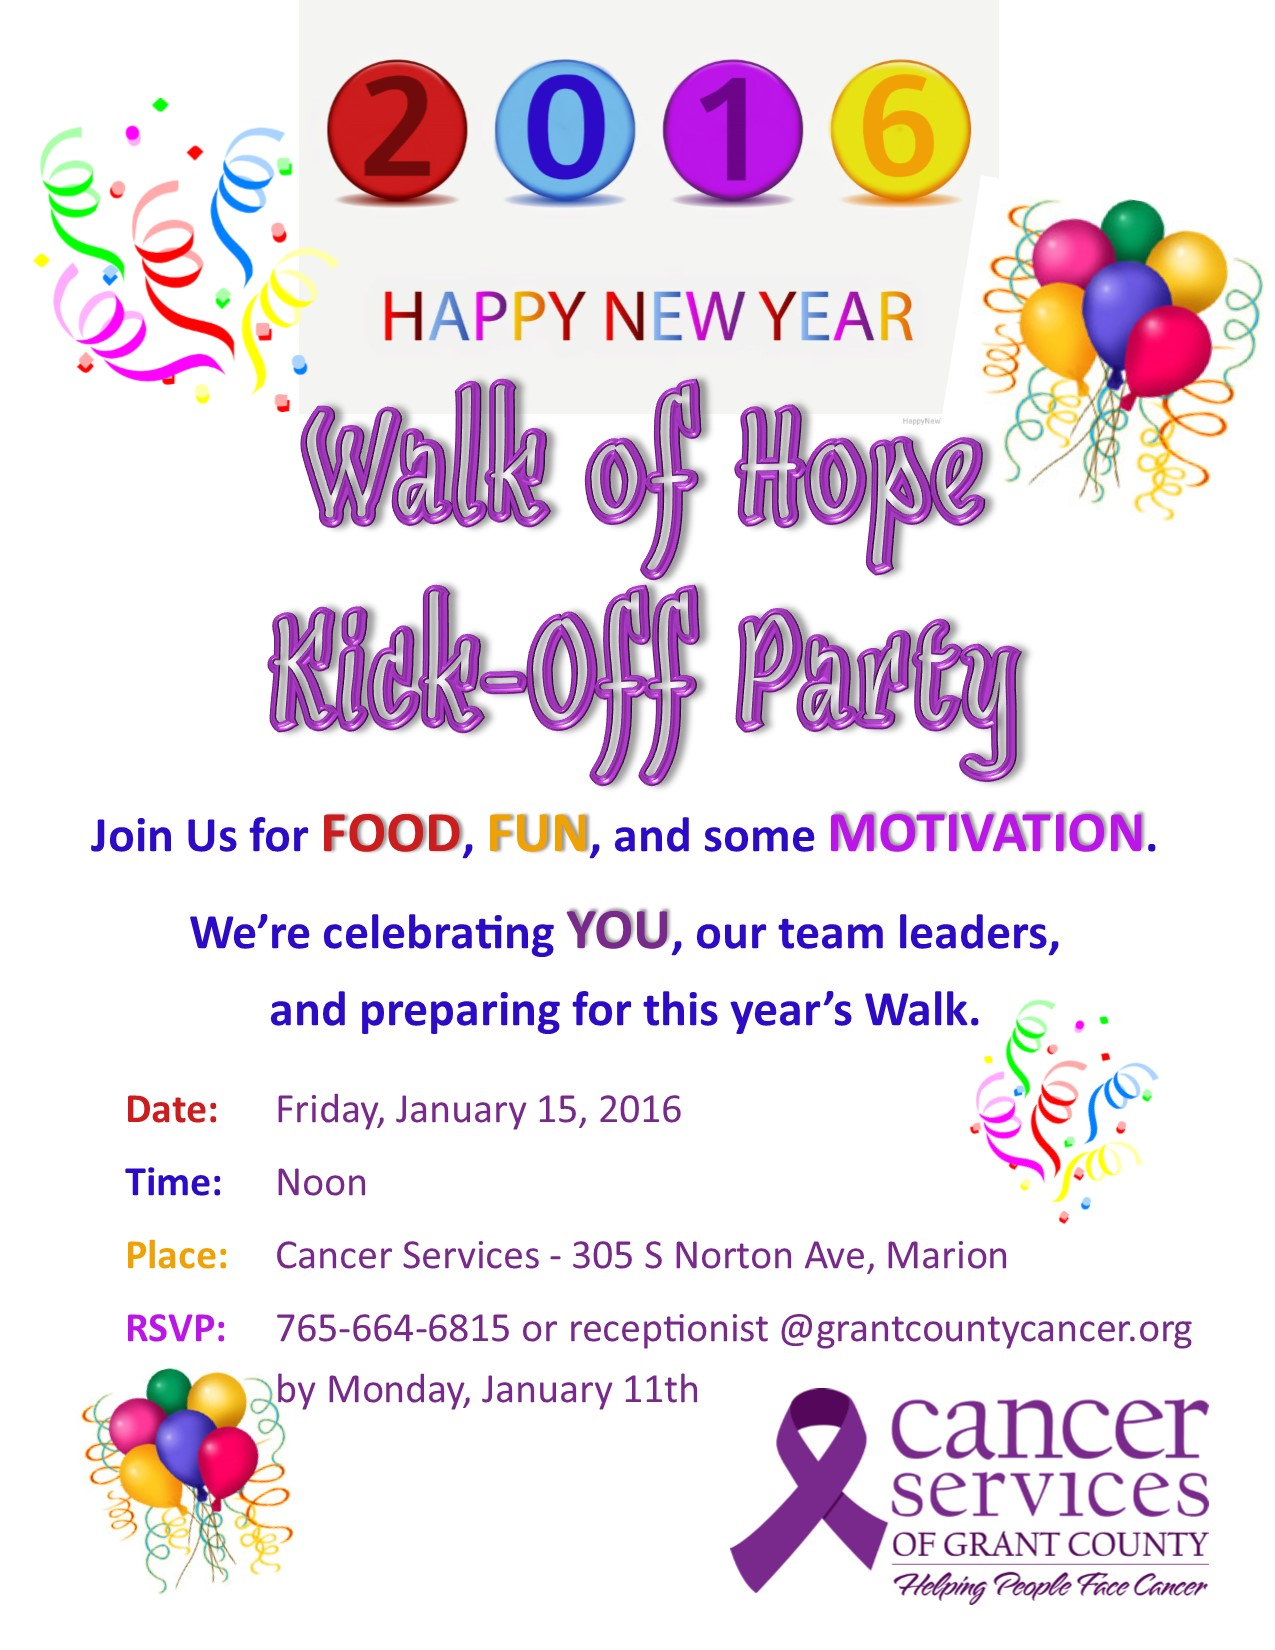 Cancer Services of Grant County | Walk of Hope Kick-off